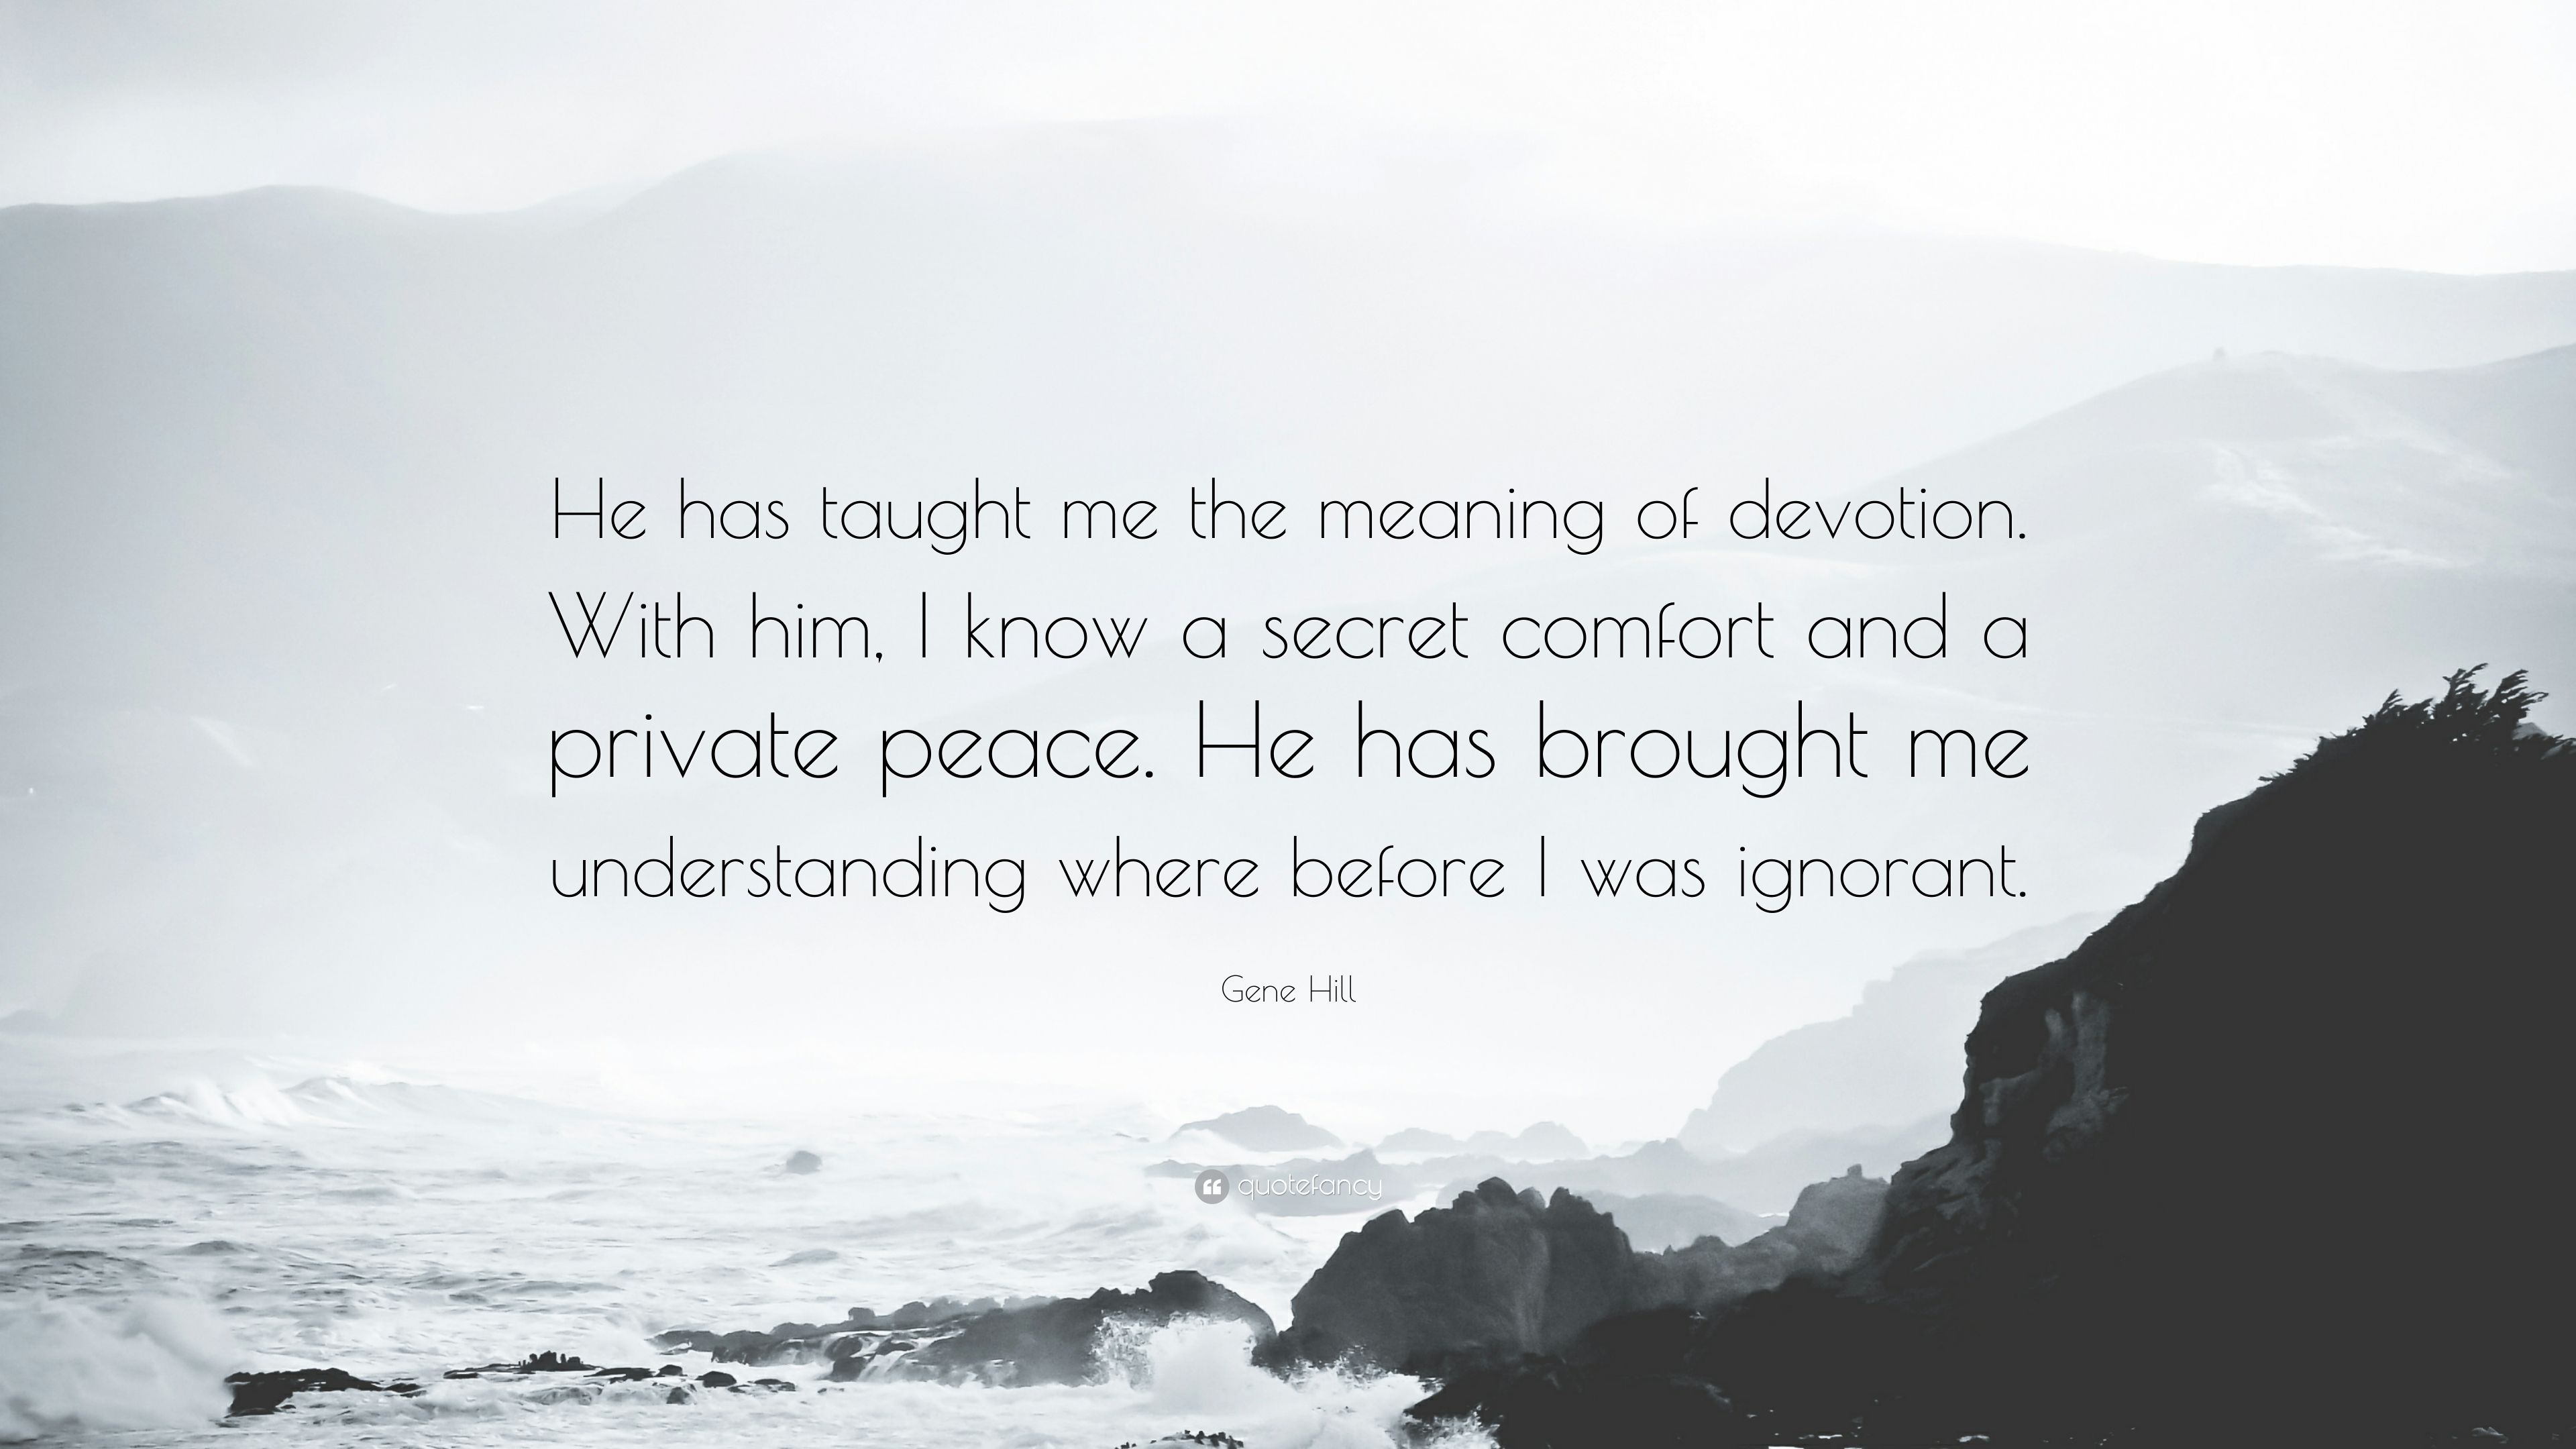 Gene Hill Quote He Has Taught Me The Meaning Of Devotion With Him I Know A Secret Comfort And A Private Peace He Has Brought Me Under 7 Wallpapers Quotefancy Meaning of i in english. gene hill quote he has taught me the